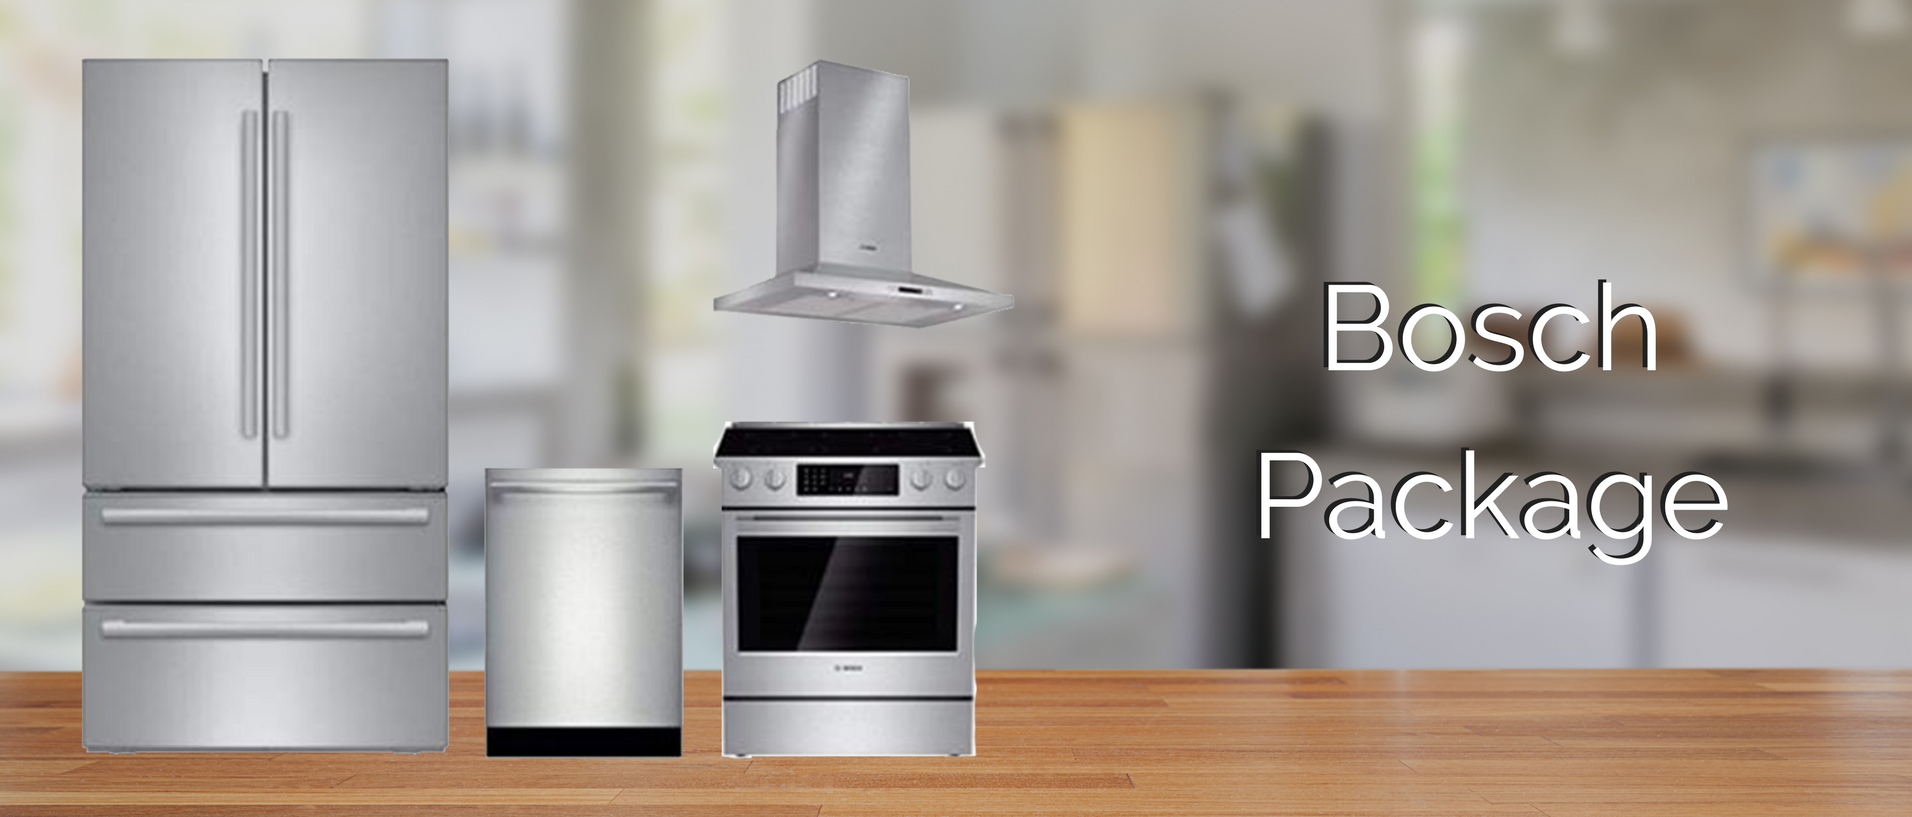 The Best Kitchen Appliances Packages of 2018 | Appliances Connection